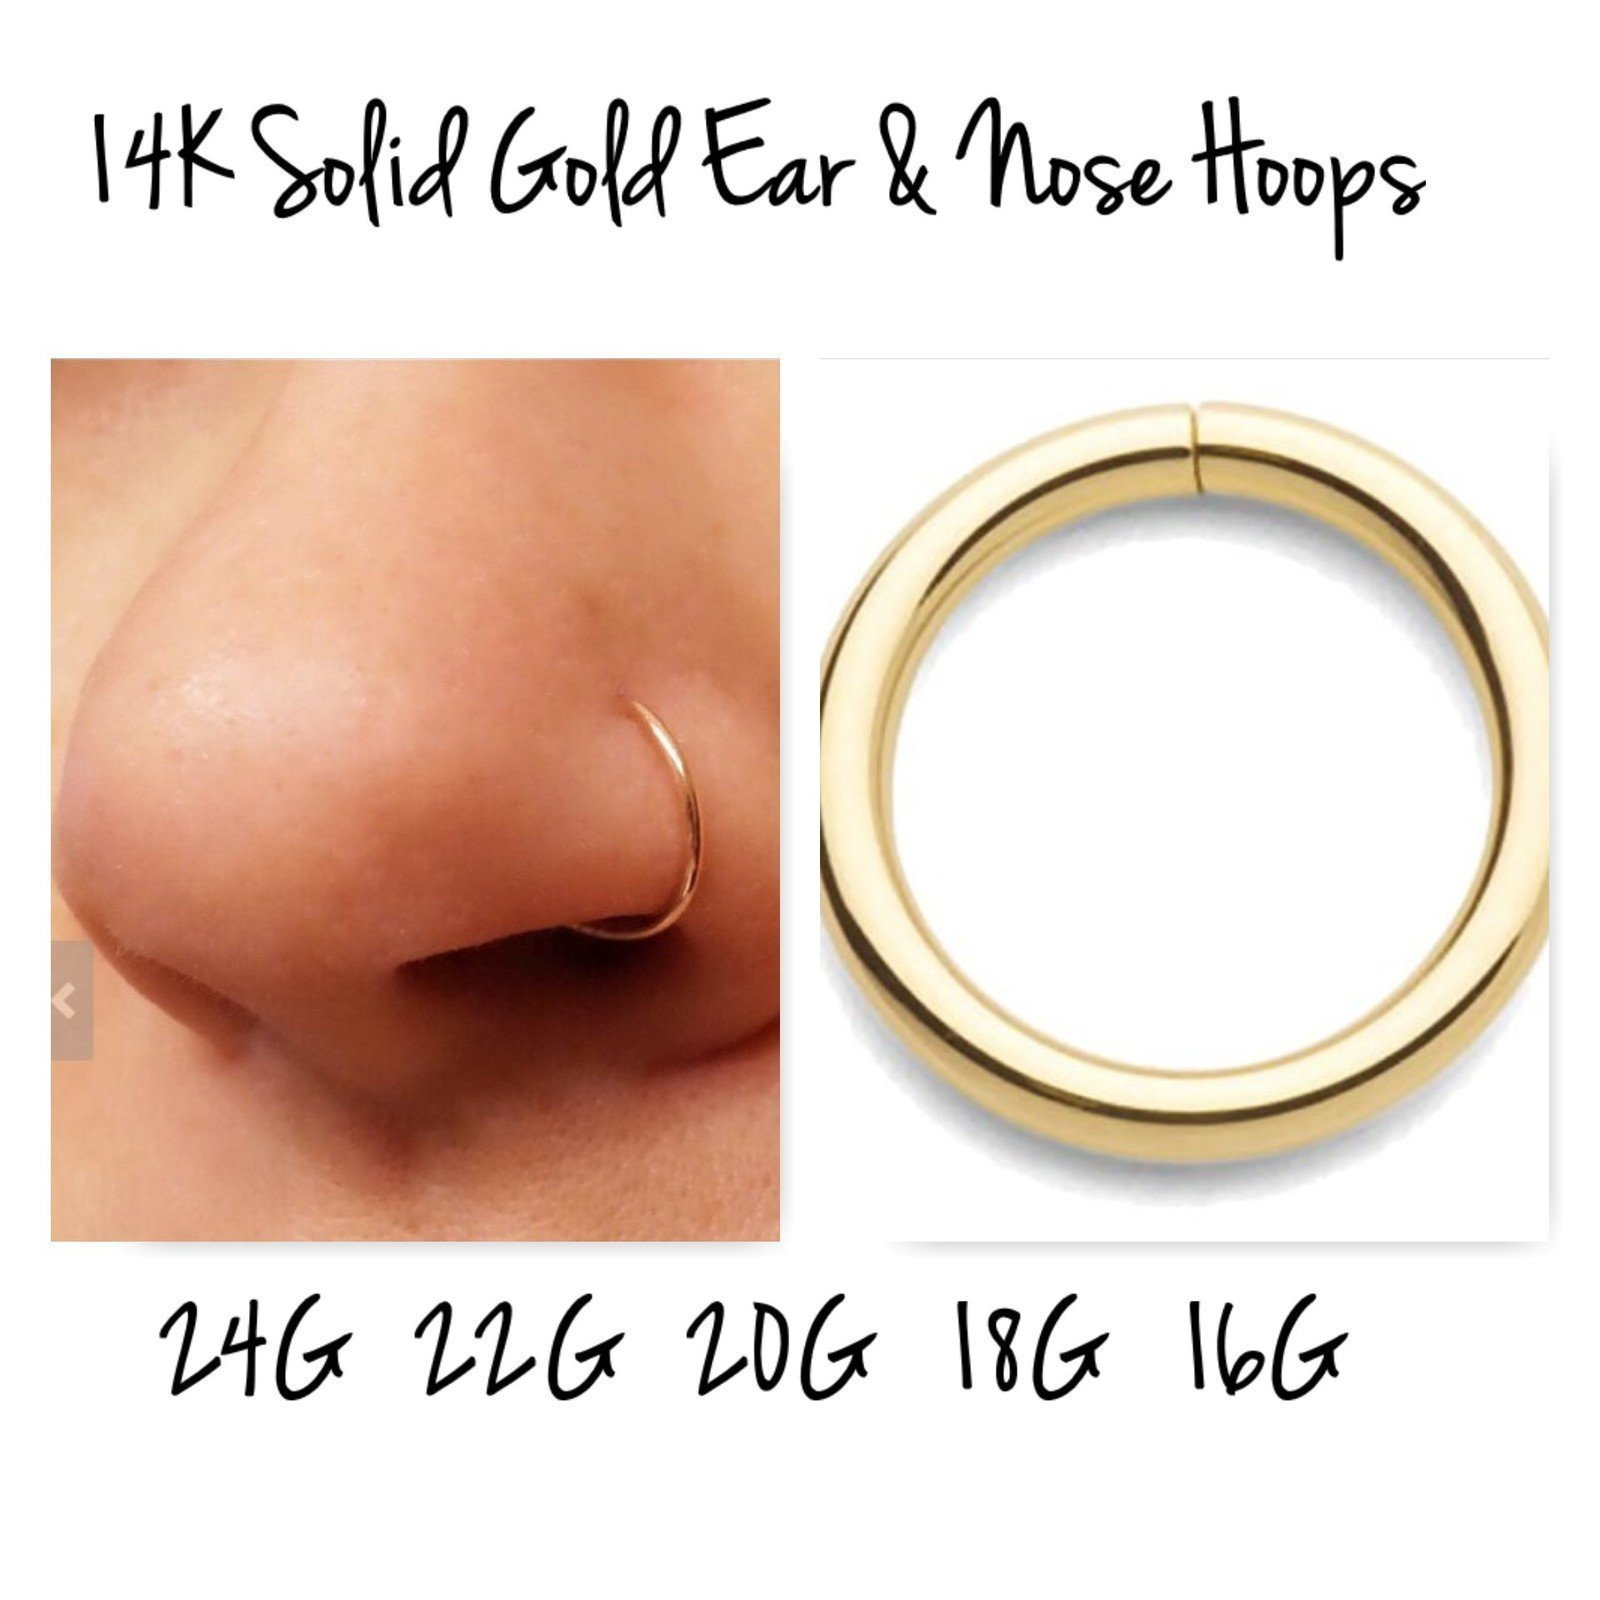 14K Yellow Gold Cartilage Hoop Earring Nose Ring 24g 22g 20g 18g 16g Eyebrow Lip Navel Belly Button Daith Conch Helix Tragus Orbital Rook Snug Auricle Pinna Scaffolding Industrial